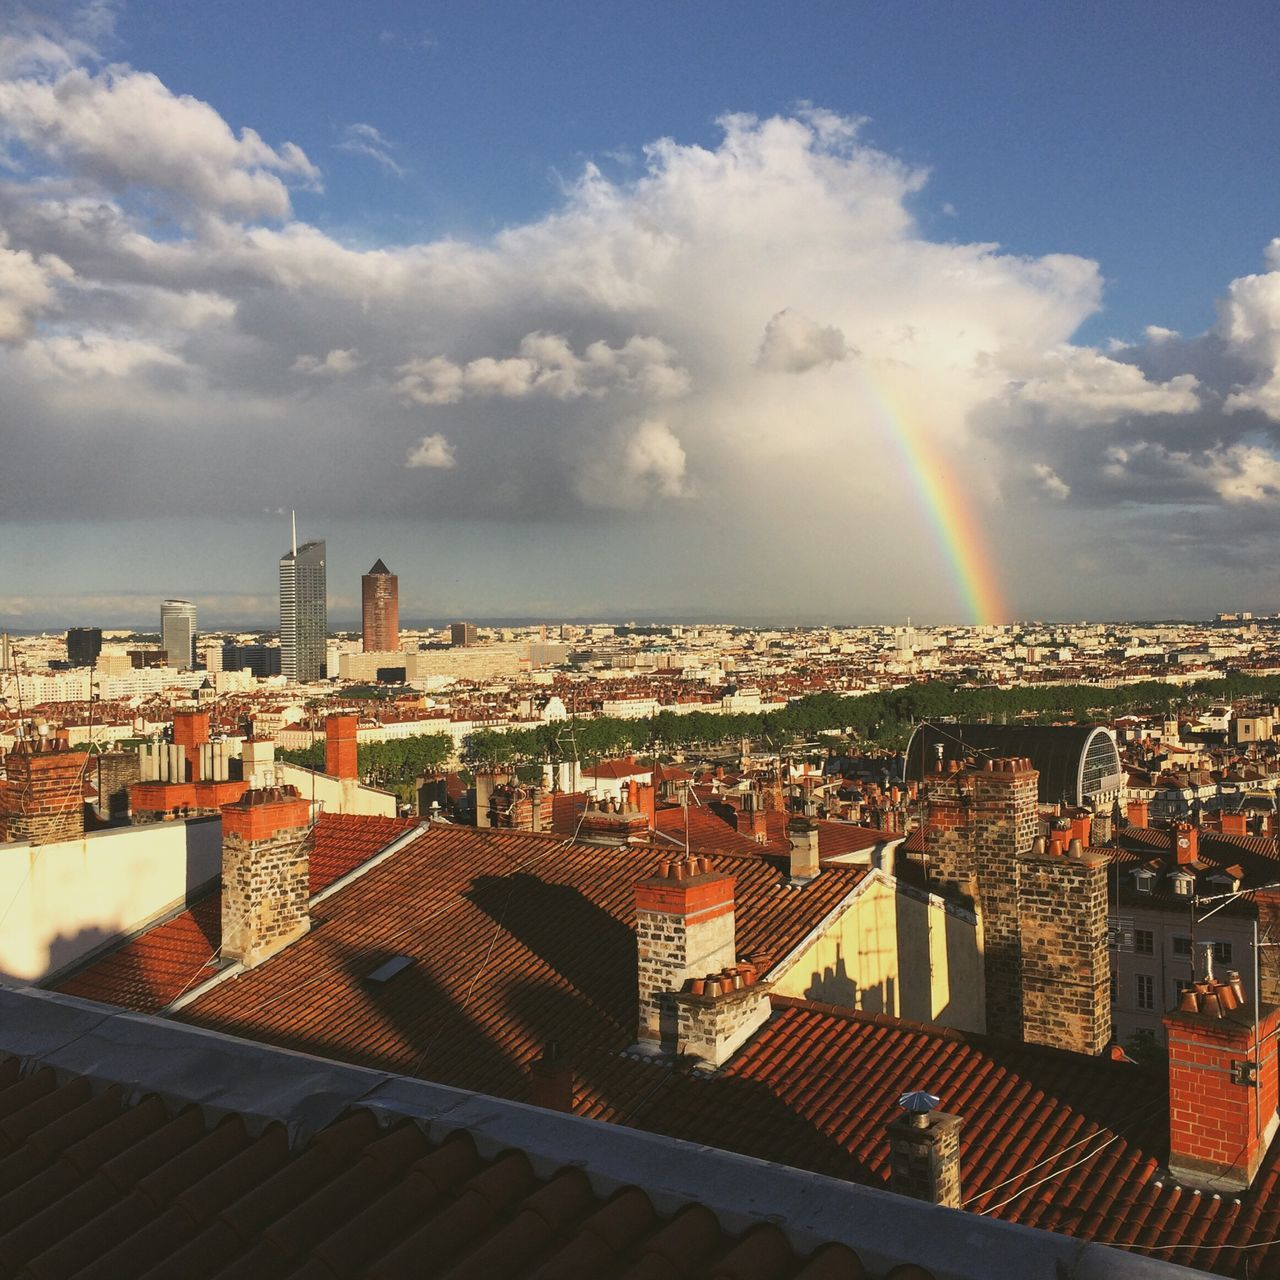 Rain is sad... Architecture Built Structure Building Exterior Crowded Sky Cityscape Cloud - Sky High Angle View City Day Outdoors Residential Building Rainbow Sunlight Town Roof Community Tiled Roof  Lyon France